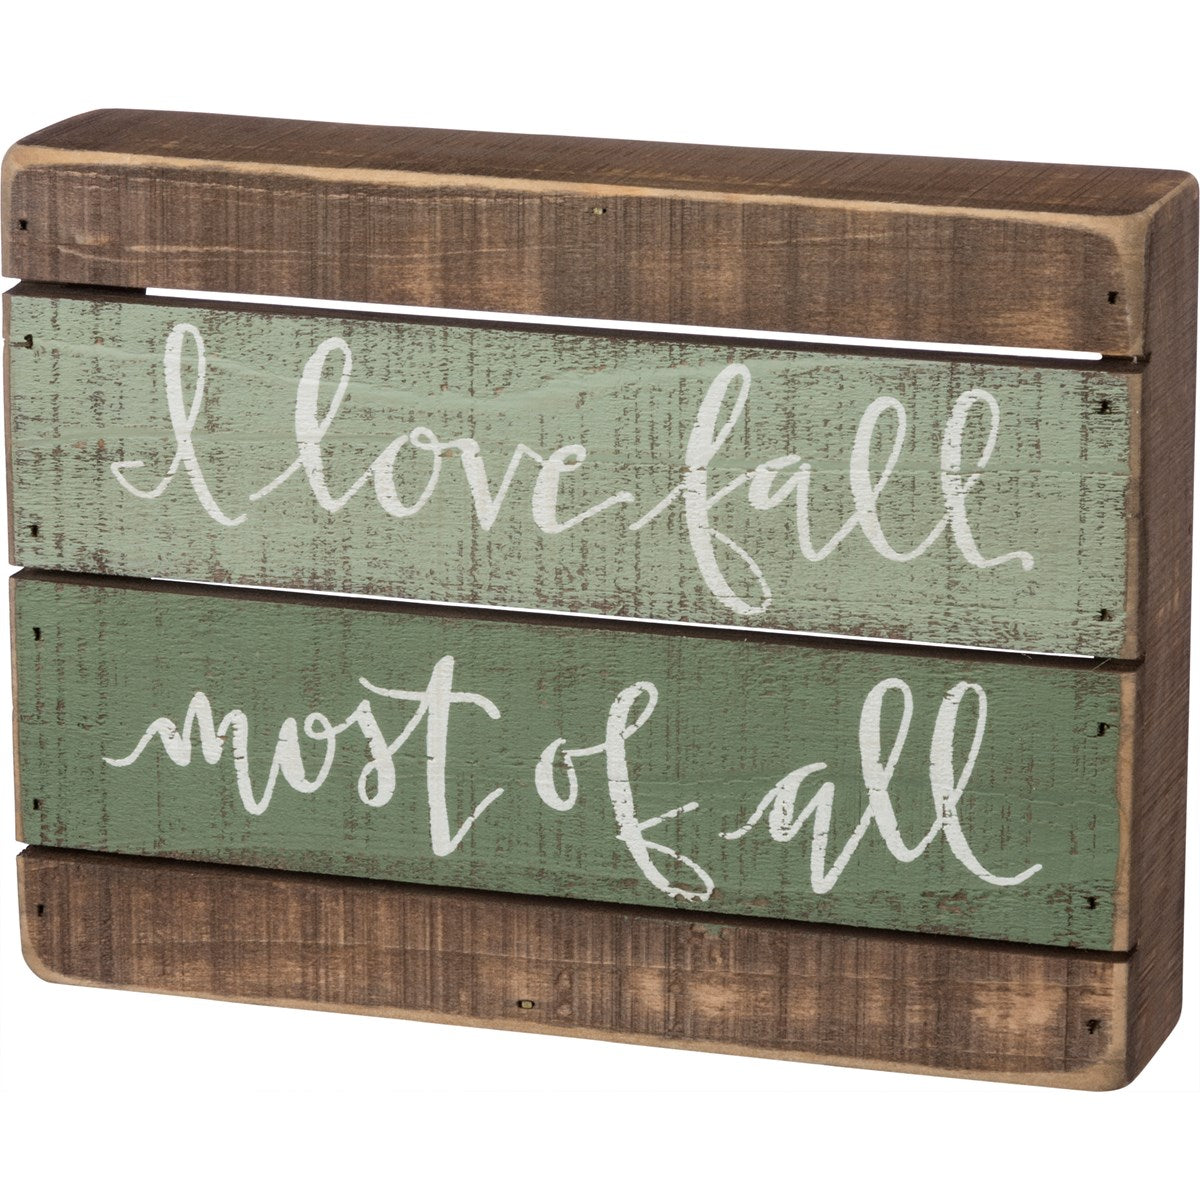 Slat Box Sign - I Love Fall Most Of All